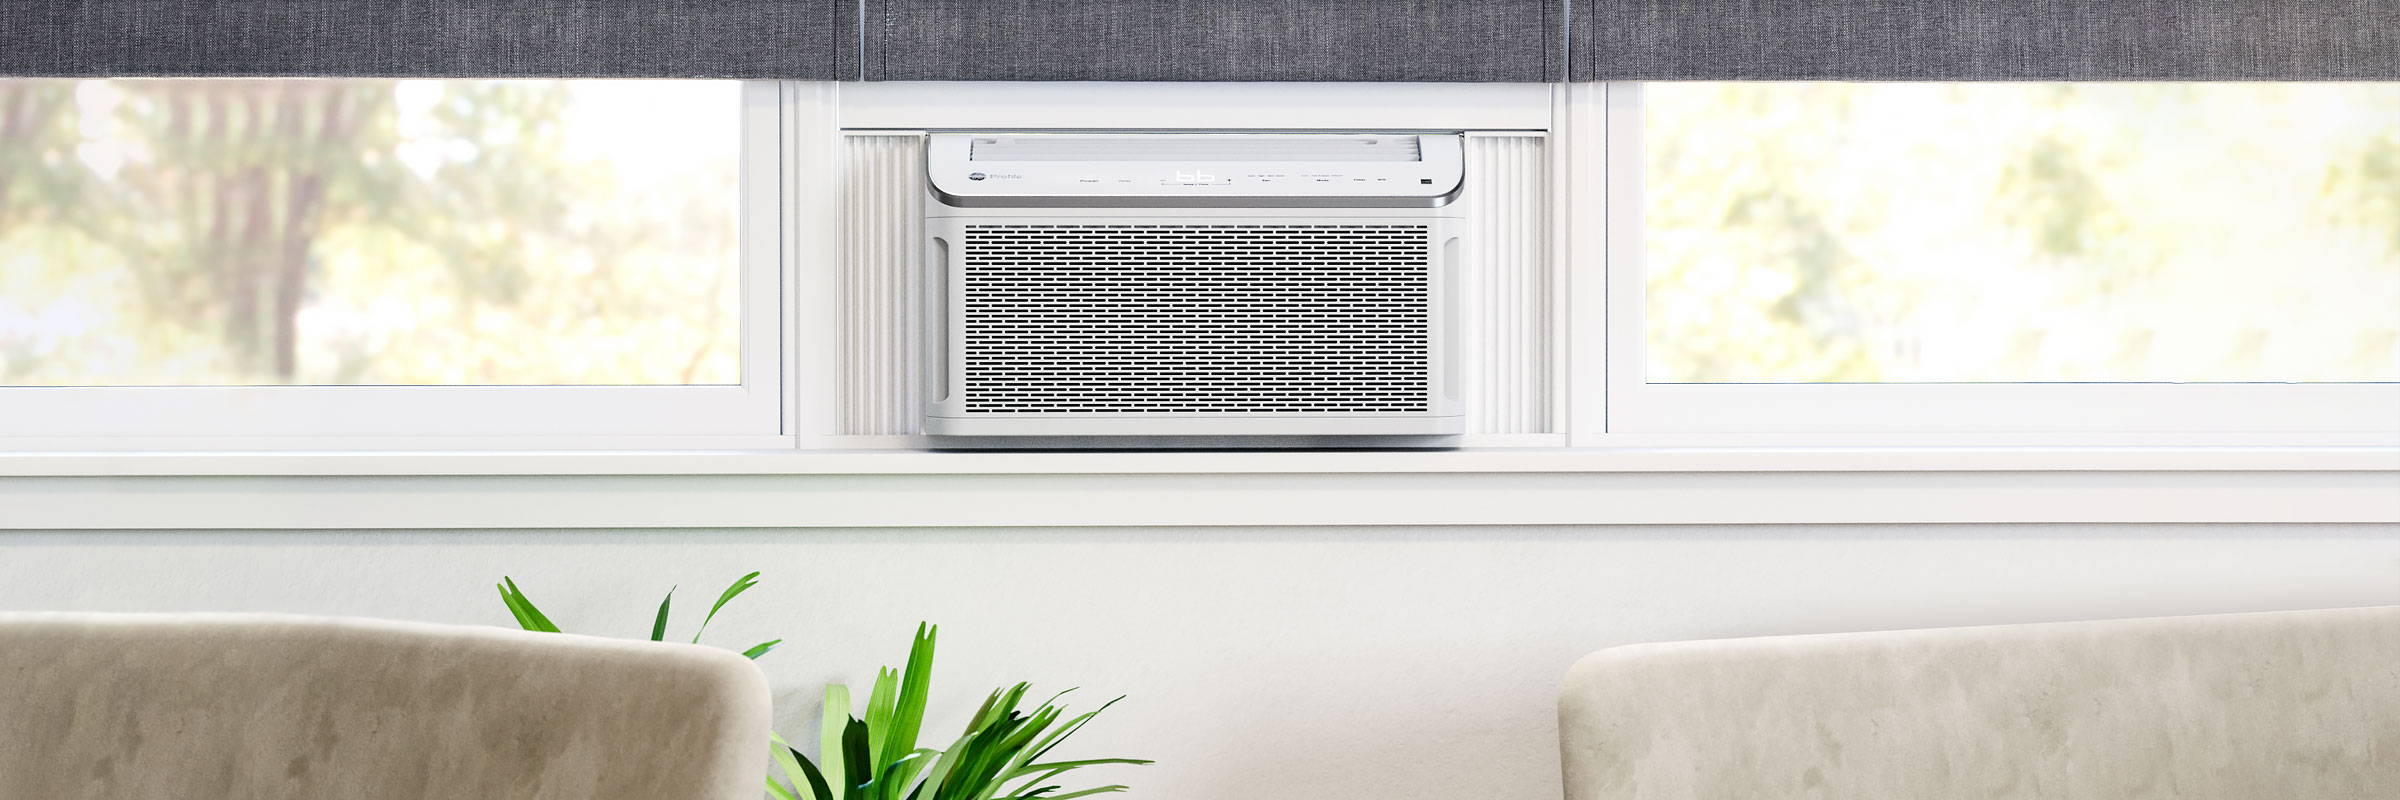 Room Air Conditioner installed in a living room.